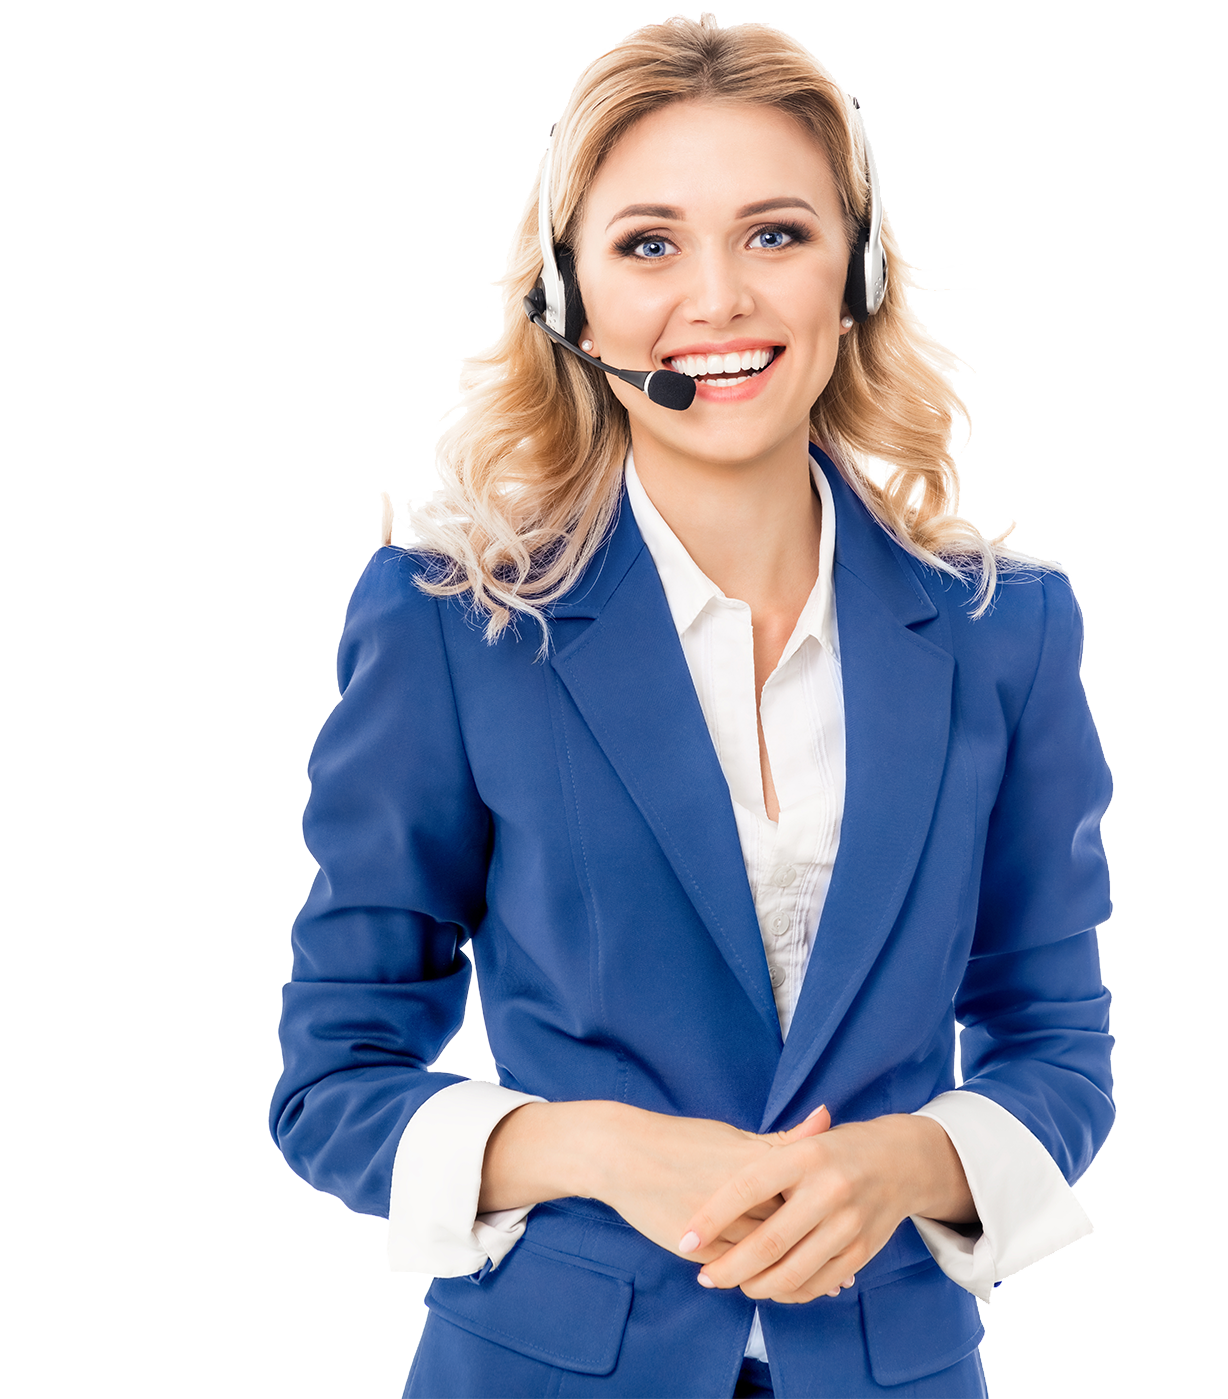 voip promotion phone